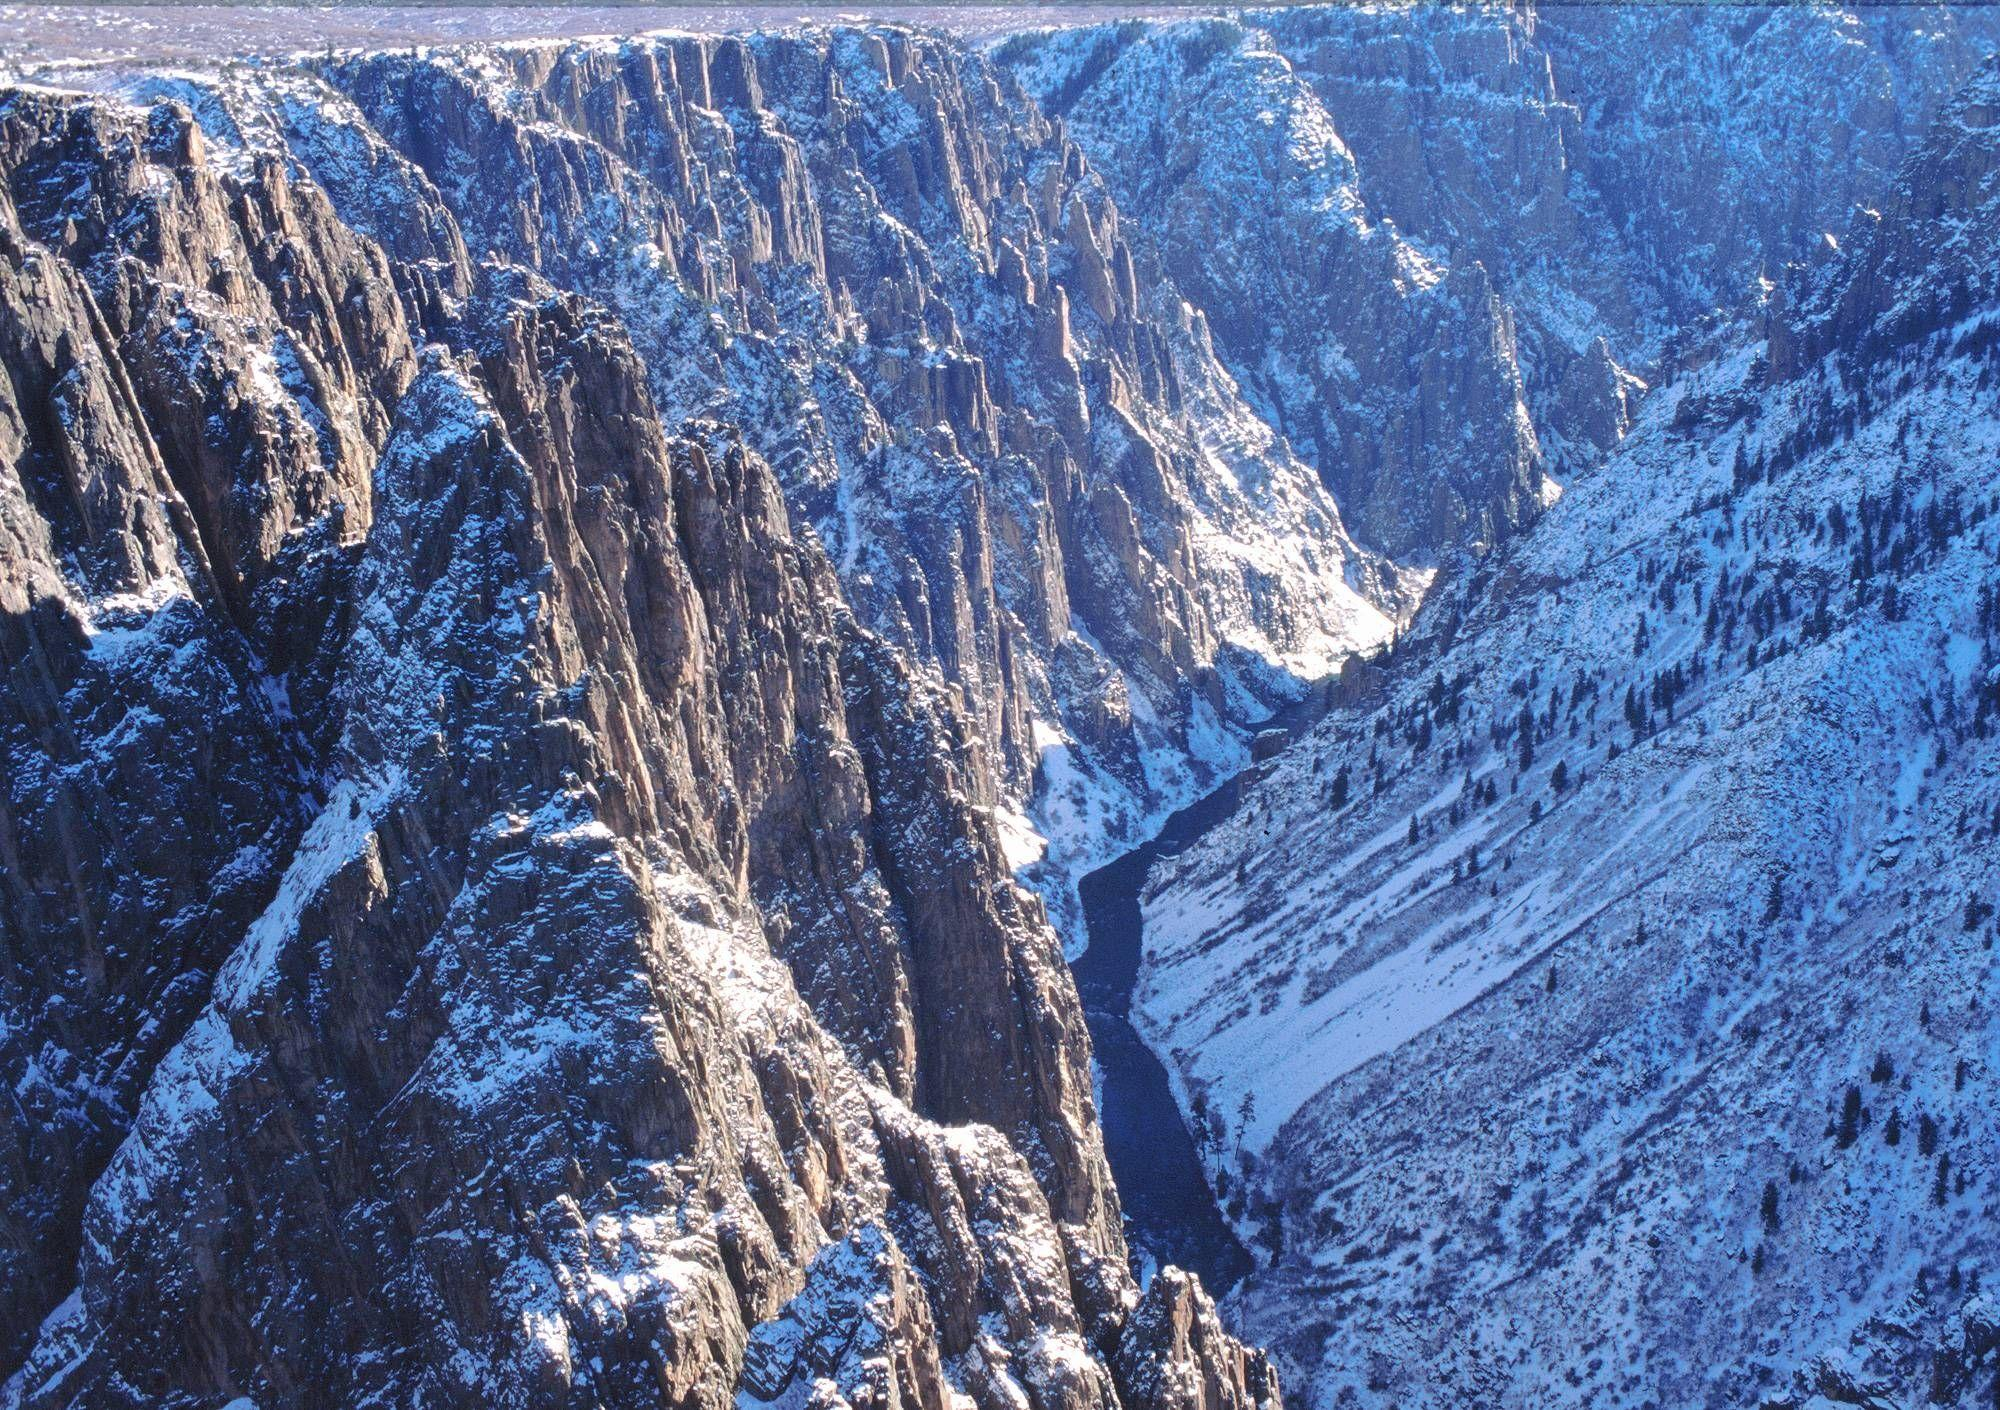 Black Canyon of The Gunnison By:Micah Wimmer